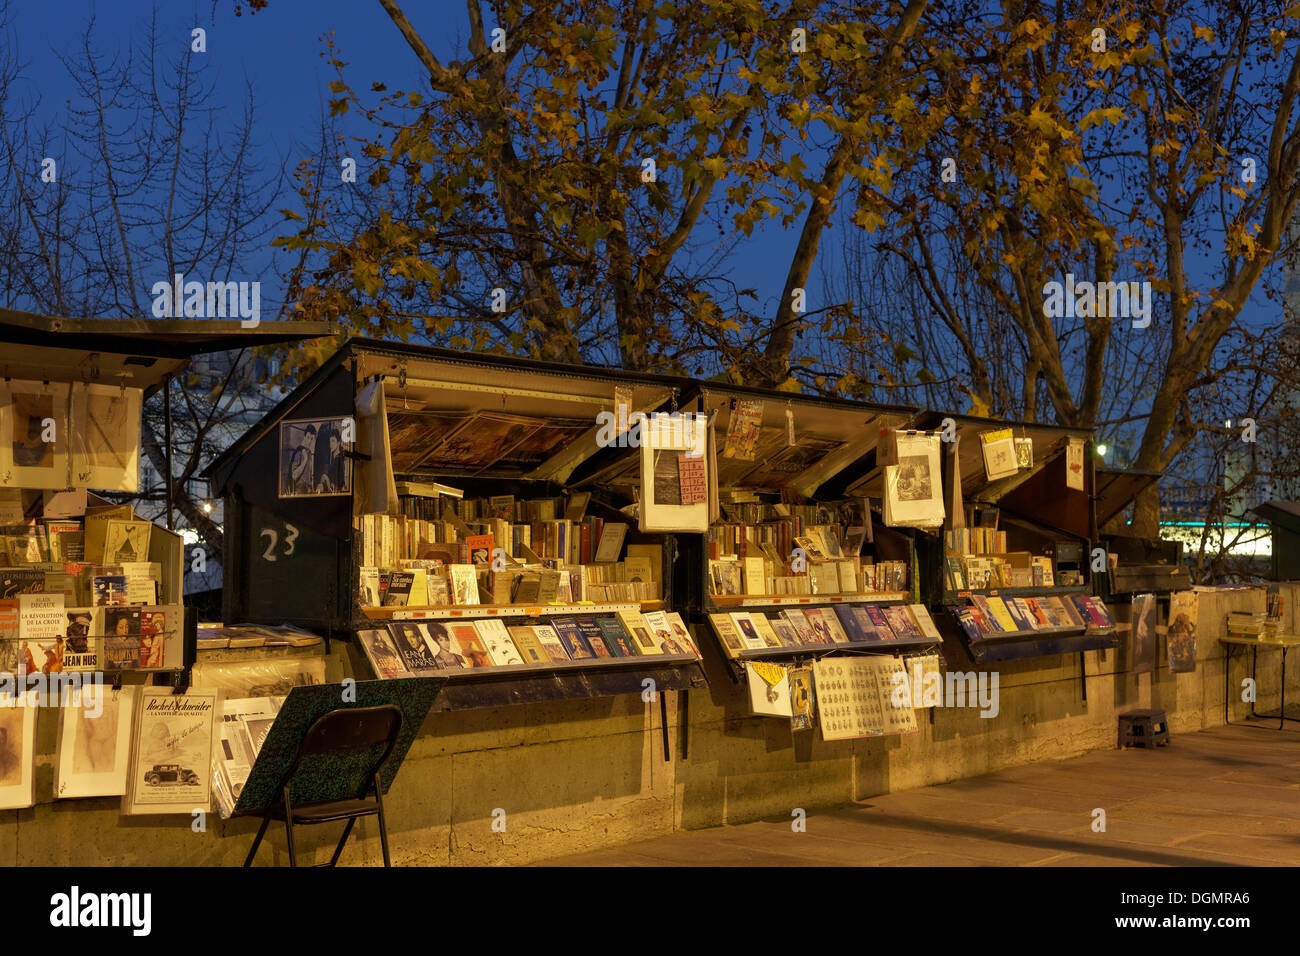 Book stalls on the banks of the Seine, booksellers, Quai de la Tournelle, evening mood, 5th arrondissement, Paris, Ile-de-France - Stock Image